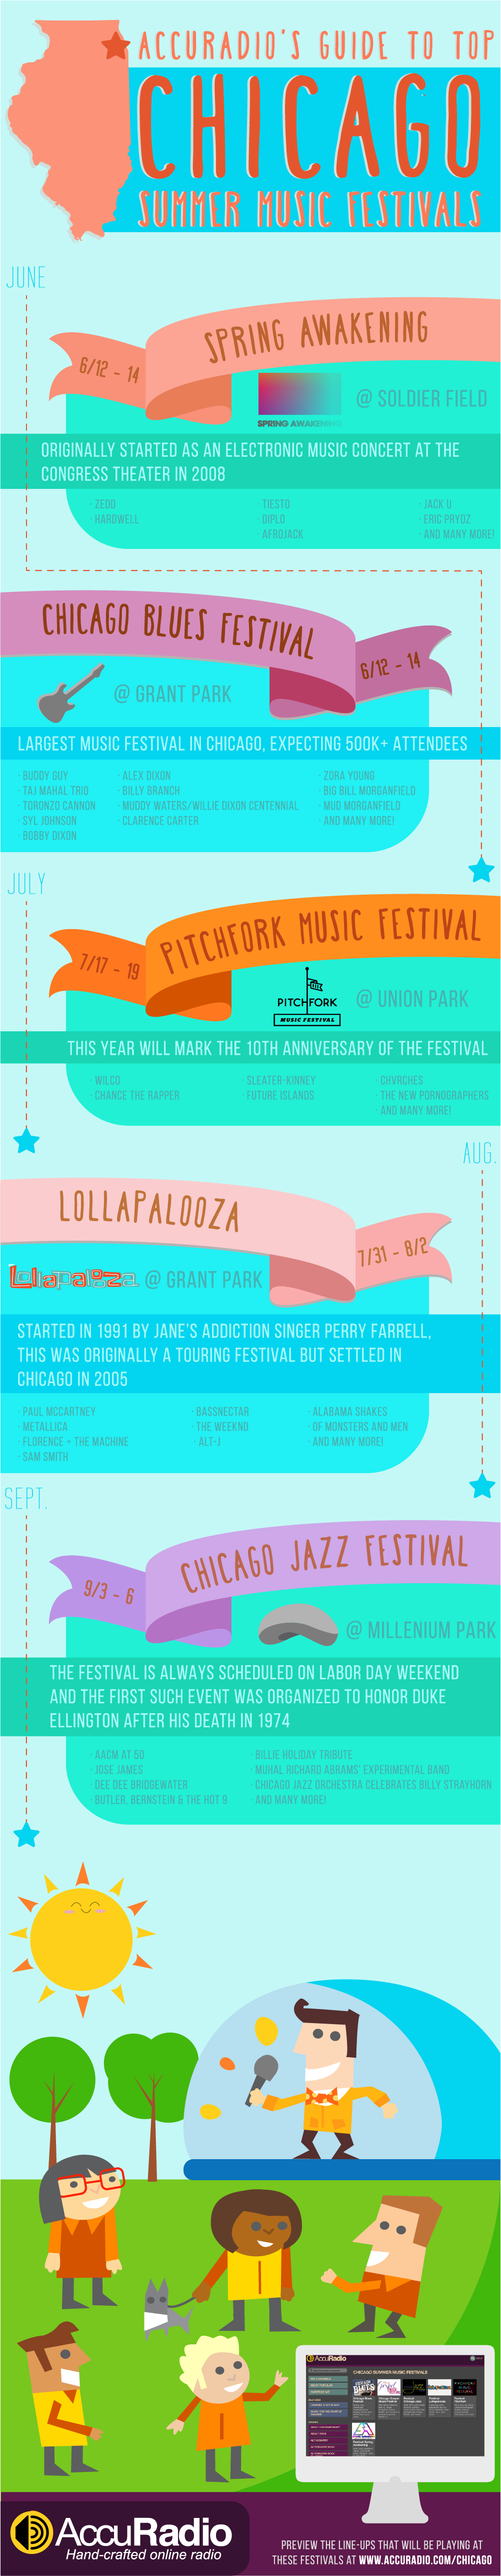 AccuRadio's Guide to Summer Festivals in Chicago